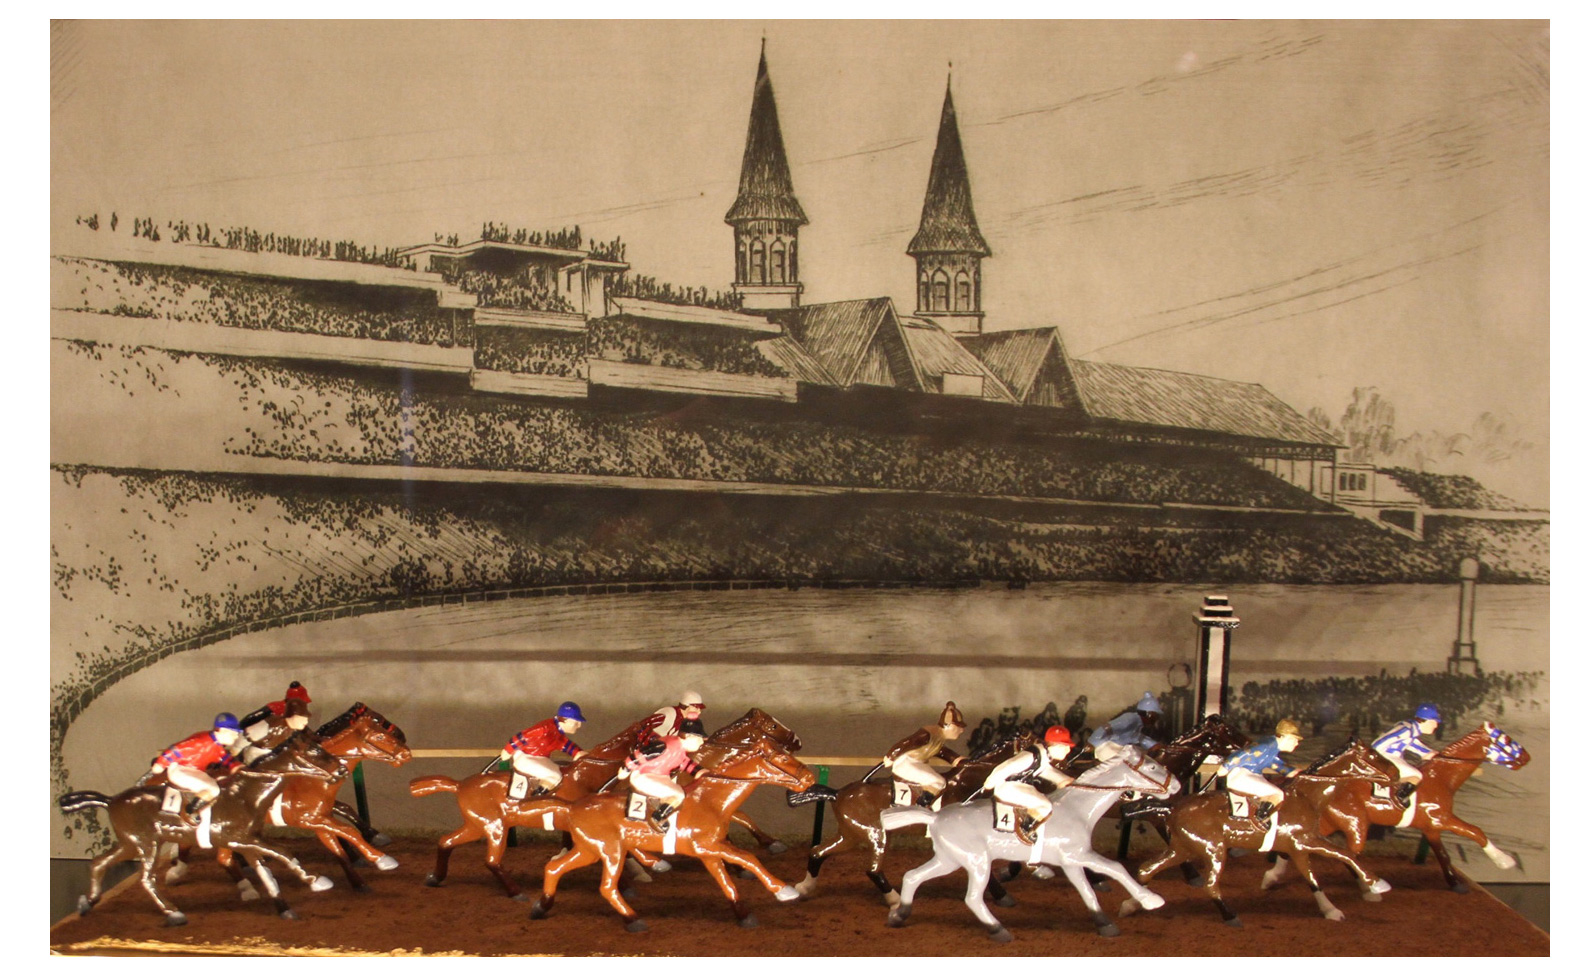 The Kentucky Derby diorama depicting the fastest 10 horses in Kentucky Derby history between 1930 and 1950, 11 horses featured as 2 horses ran the same time. Made by Barclay Manufacturing Co. of New Jersey. Painted in 1992 by Dr. William Schneider.